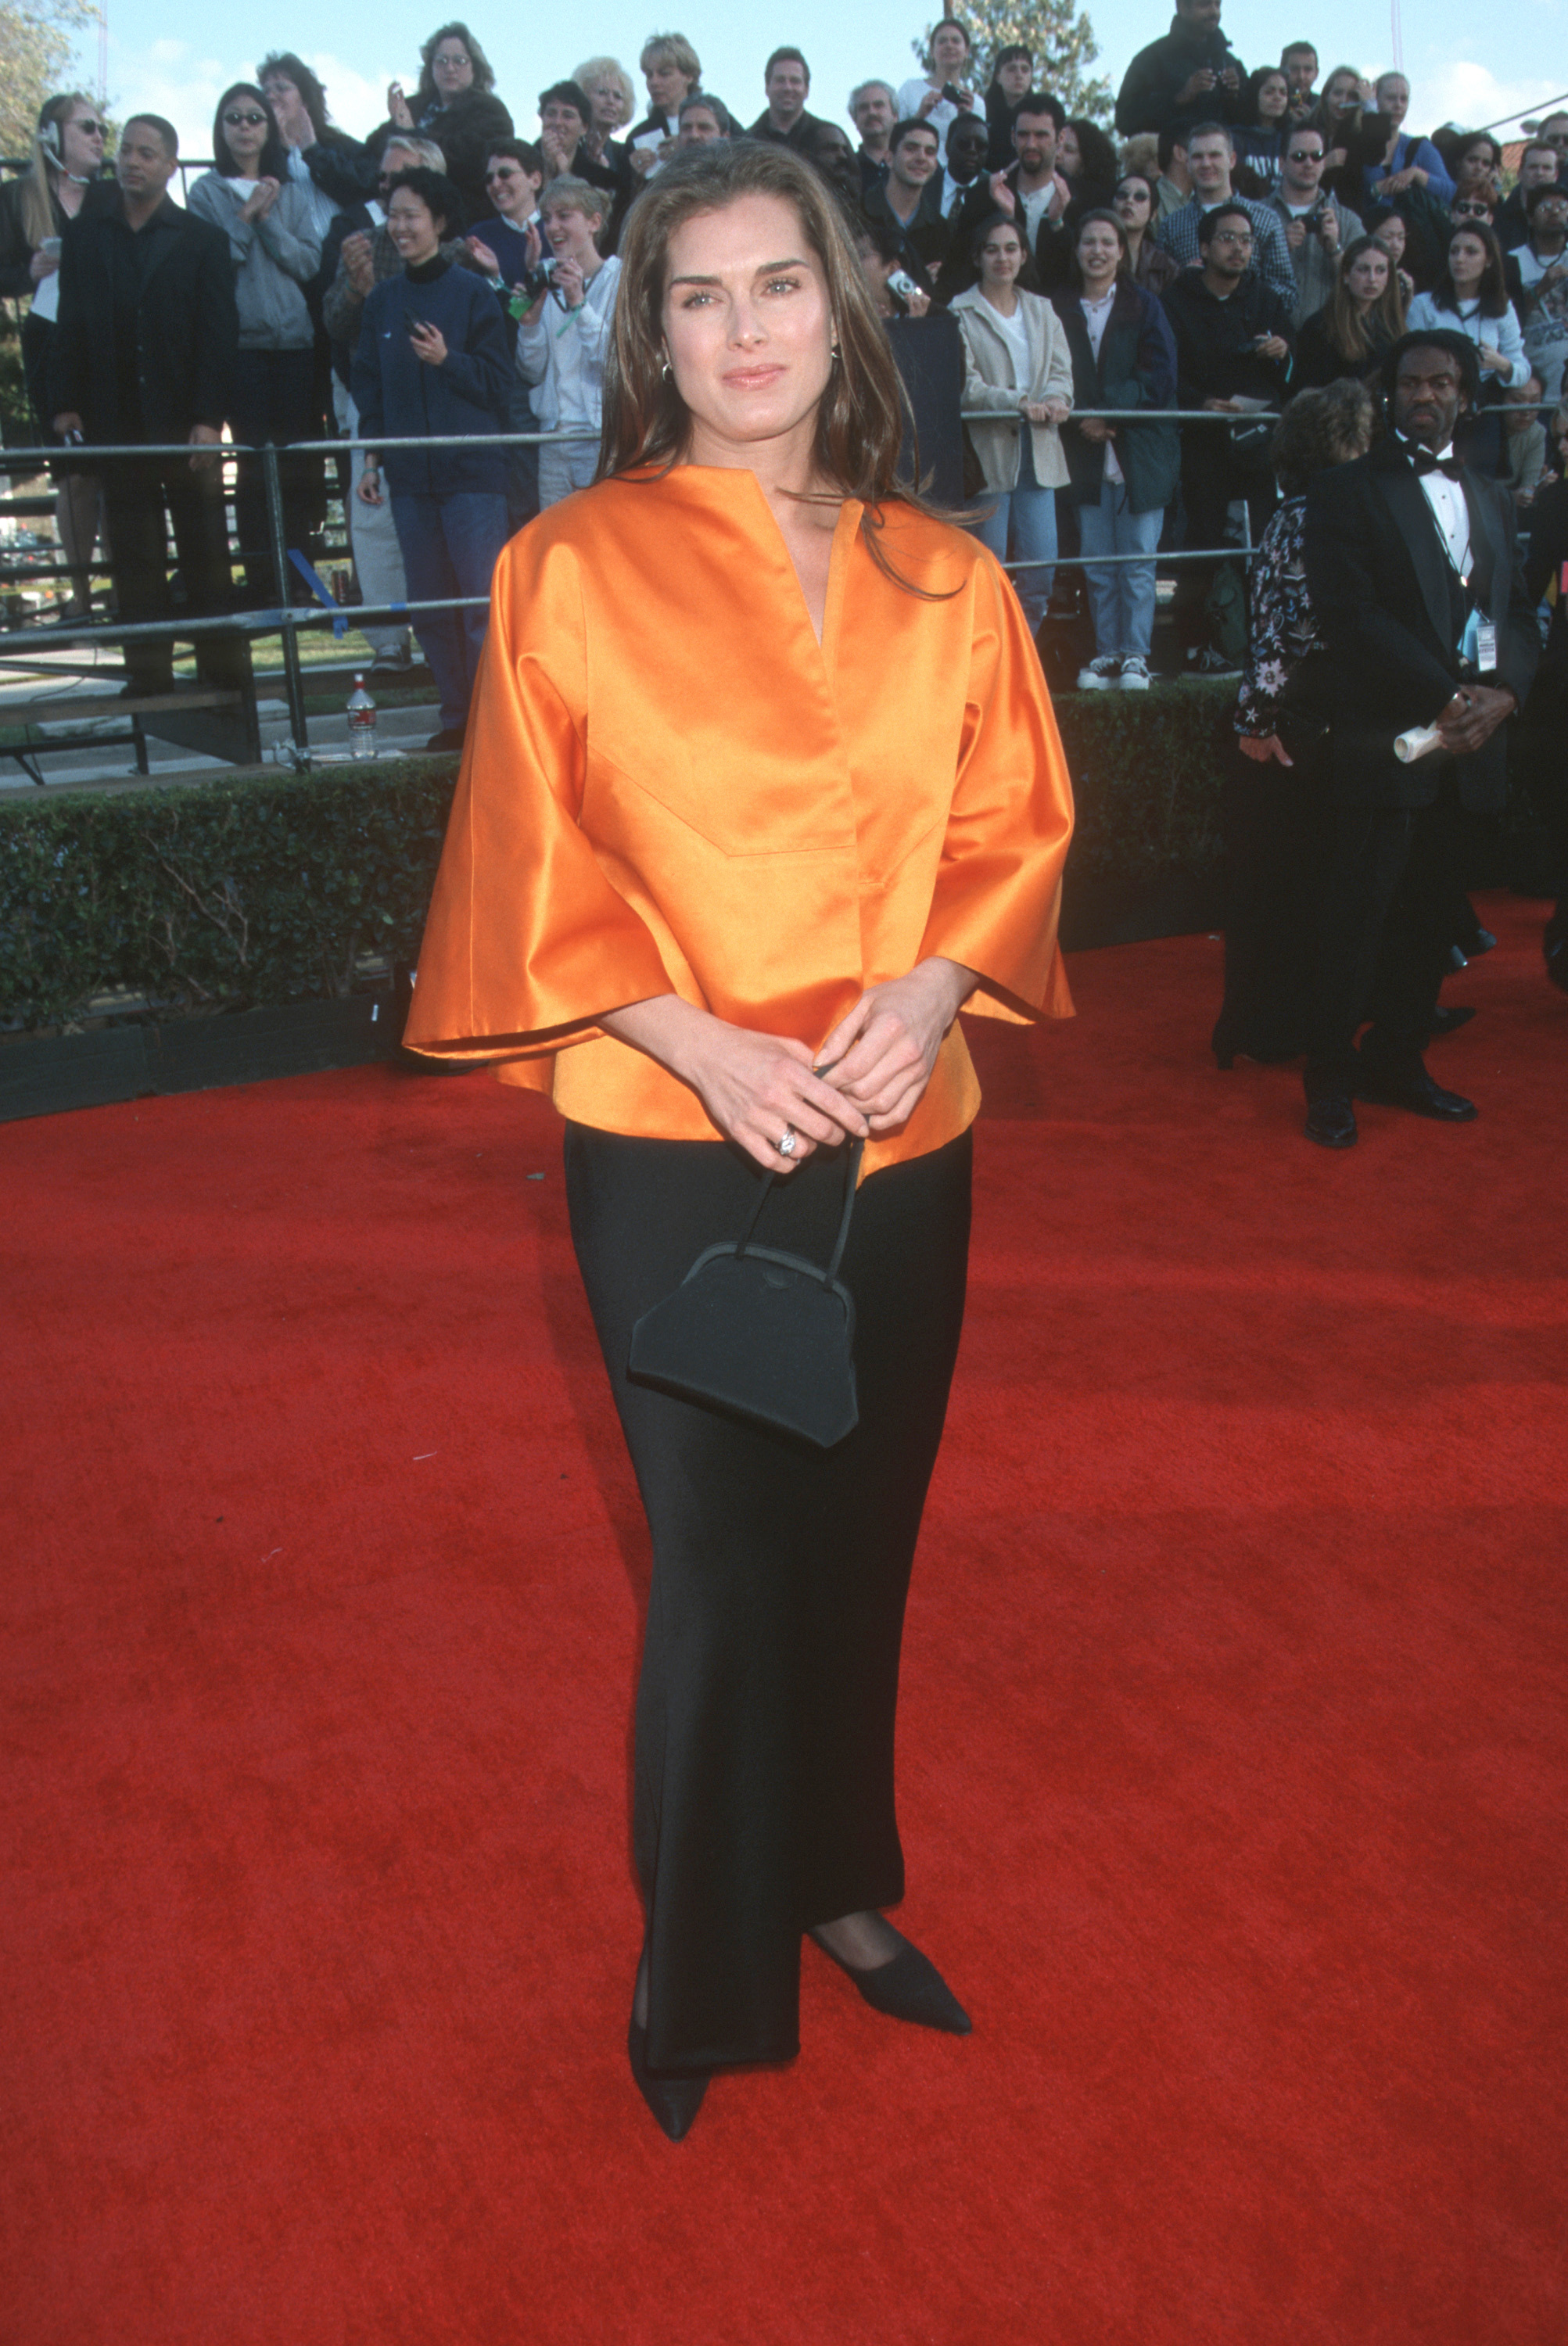 Brooke Shields attends the 5th Annual Screen Actors' Guild Awards in Los Angeles on March 7, 1999.